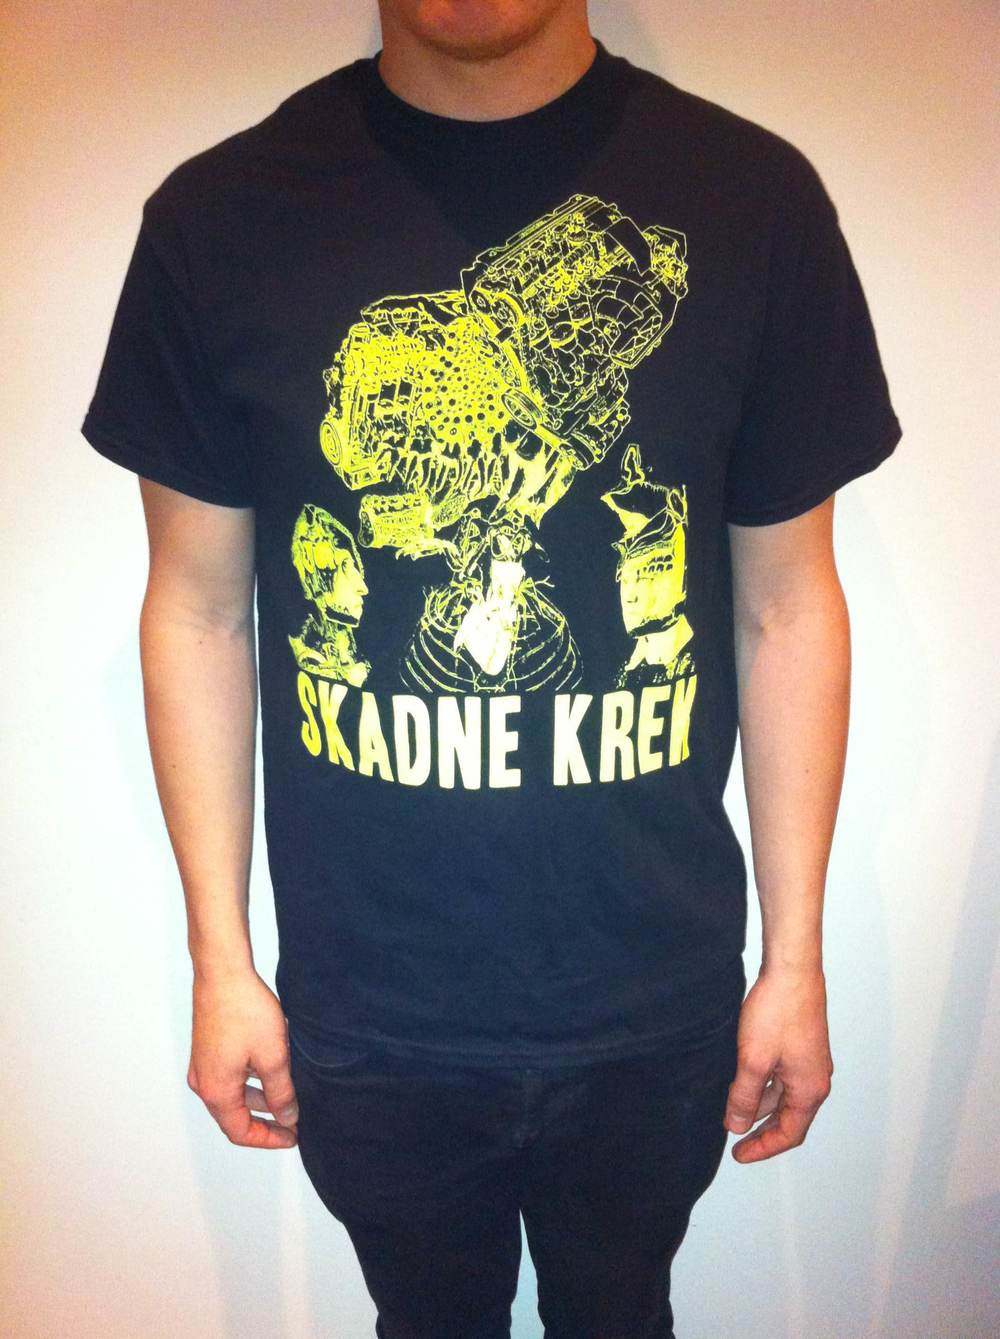 Skadne Krek tshirt  100 NOK/10€ + shipping  available colours: black, dark grey  sizes: S, M, L, XL